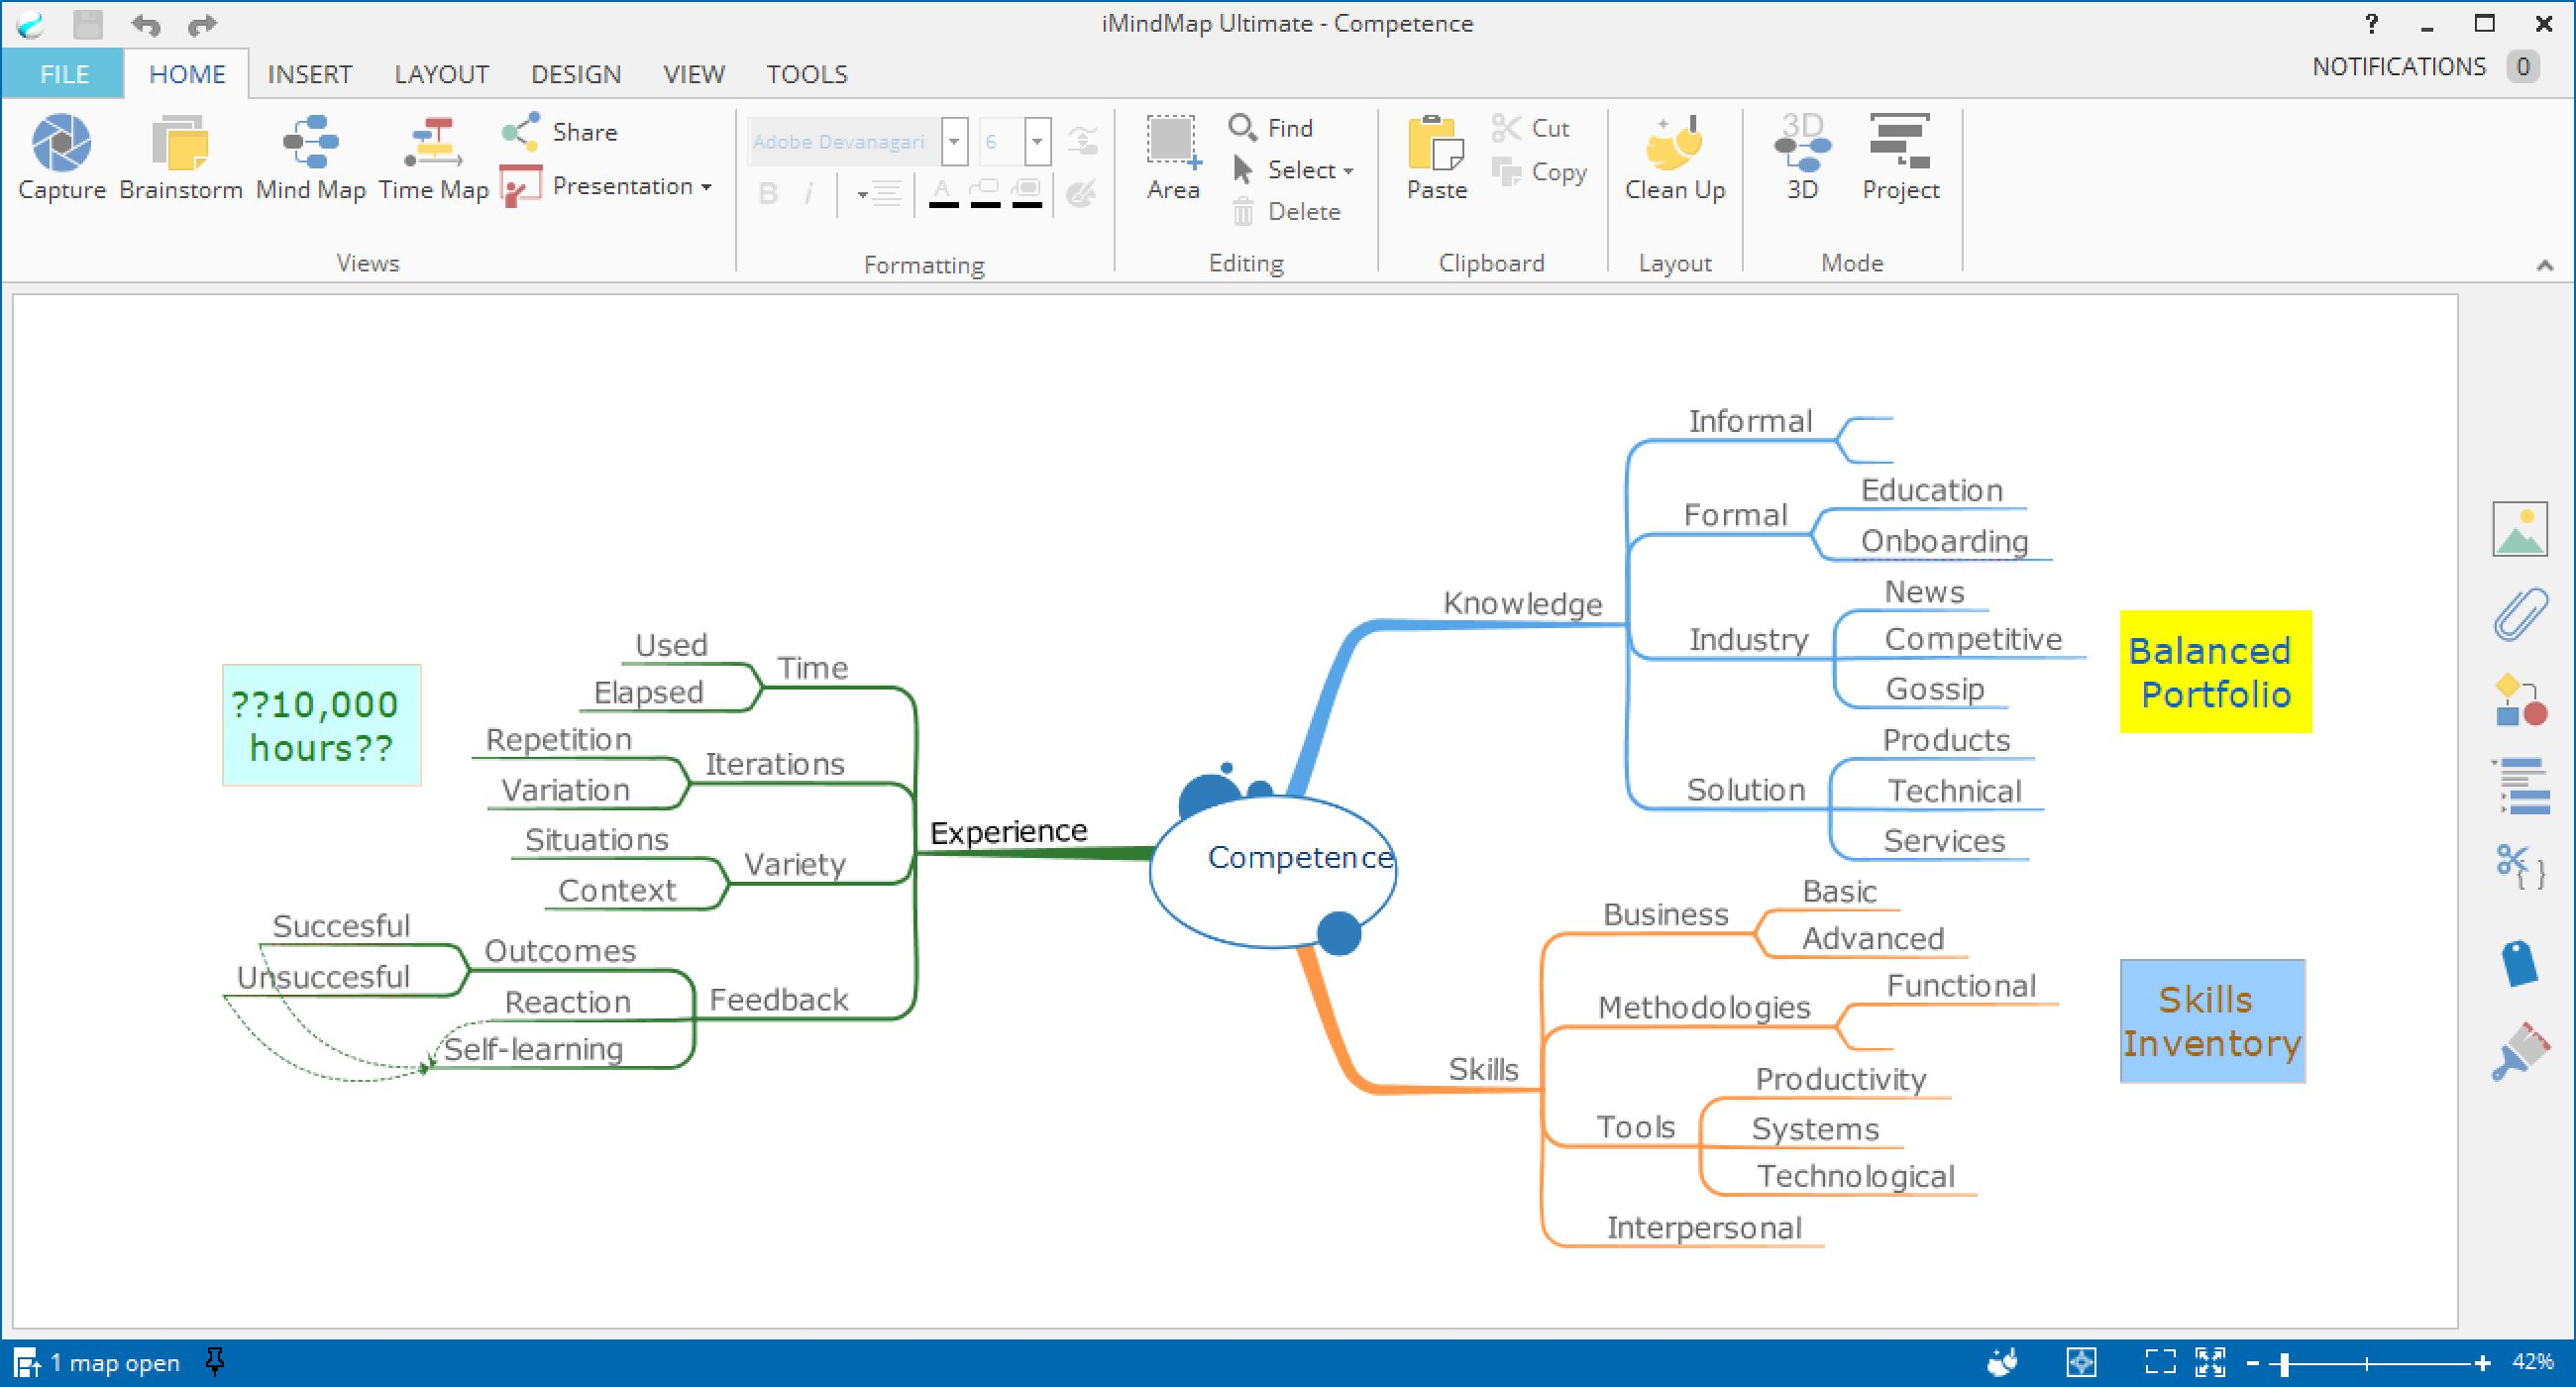 iMindMap Software Training